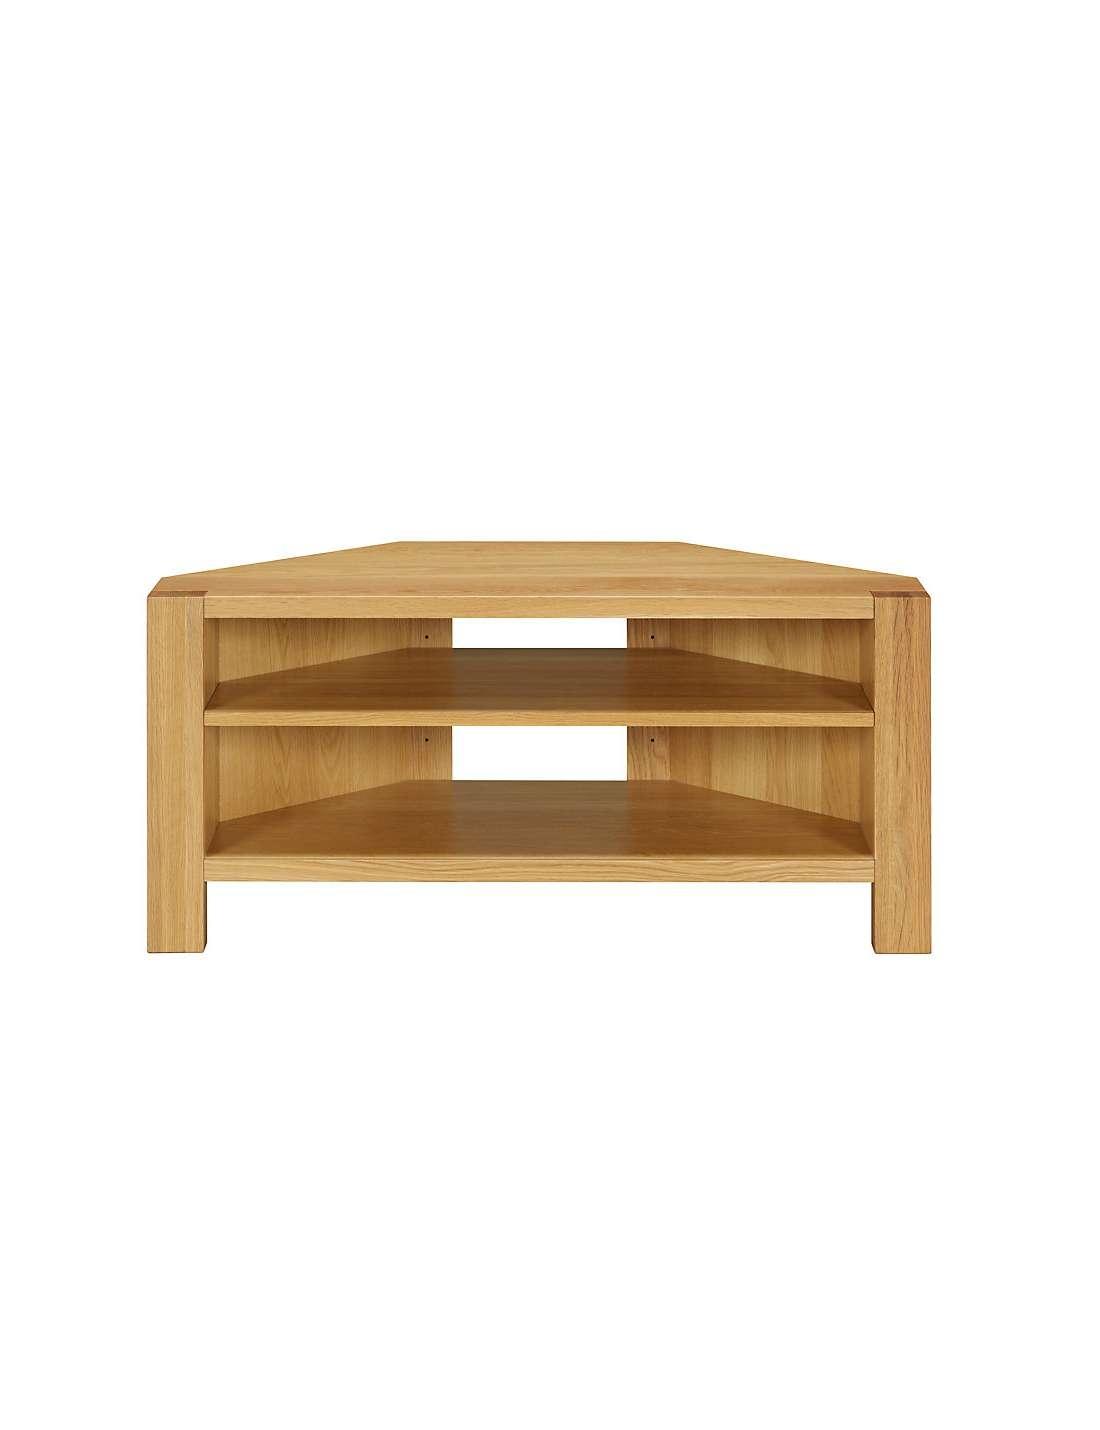 Oak Corner Tv Stands Uk | Home Design Ideas Pertaining To Corner Wooden Tv Stands (View 8 of 15)